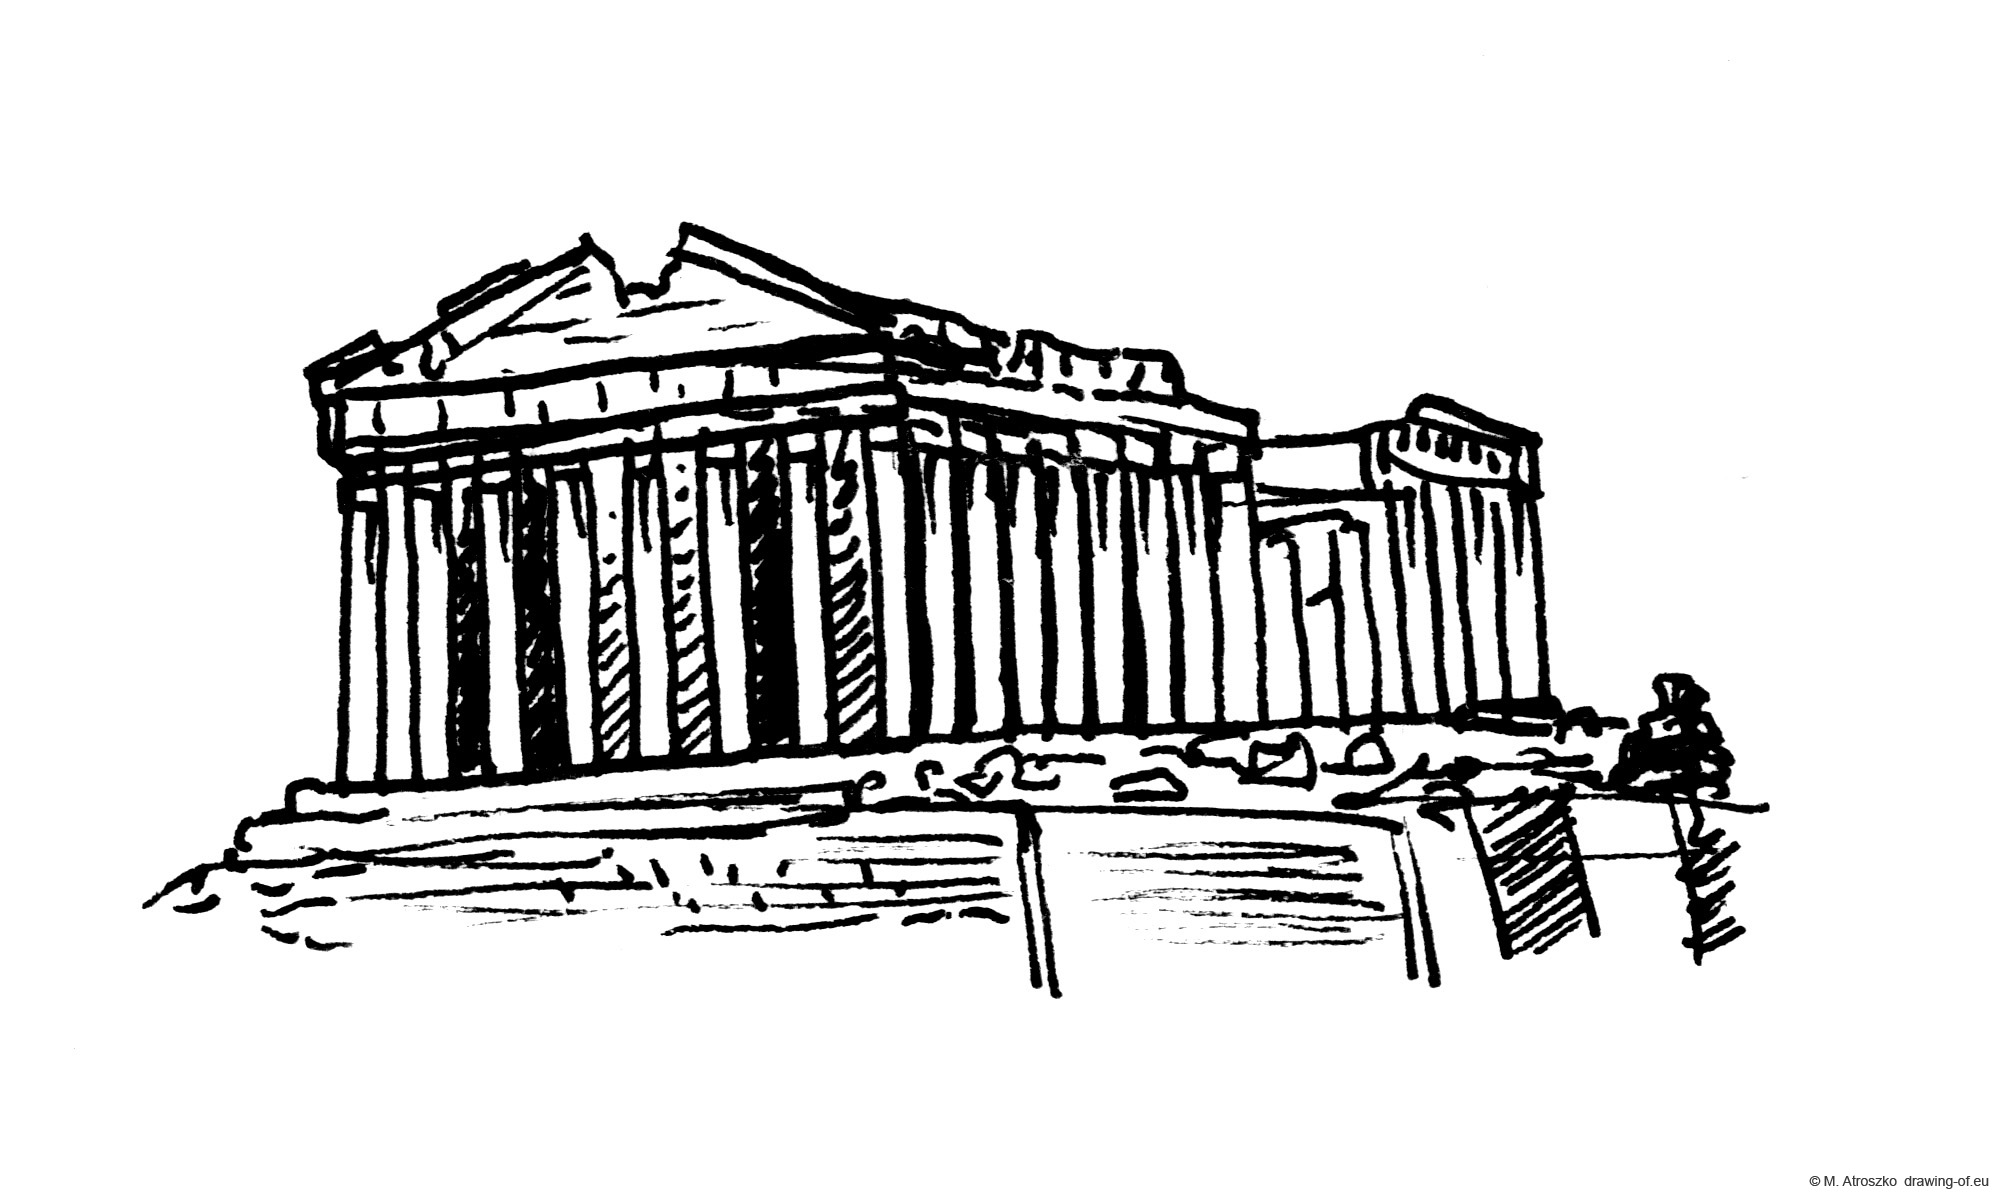 Drawing of Acropolis